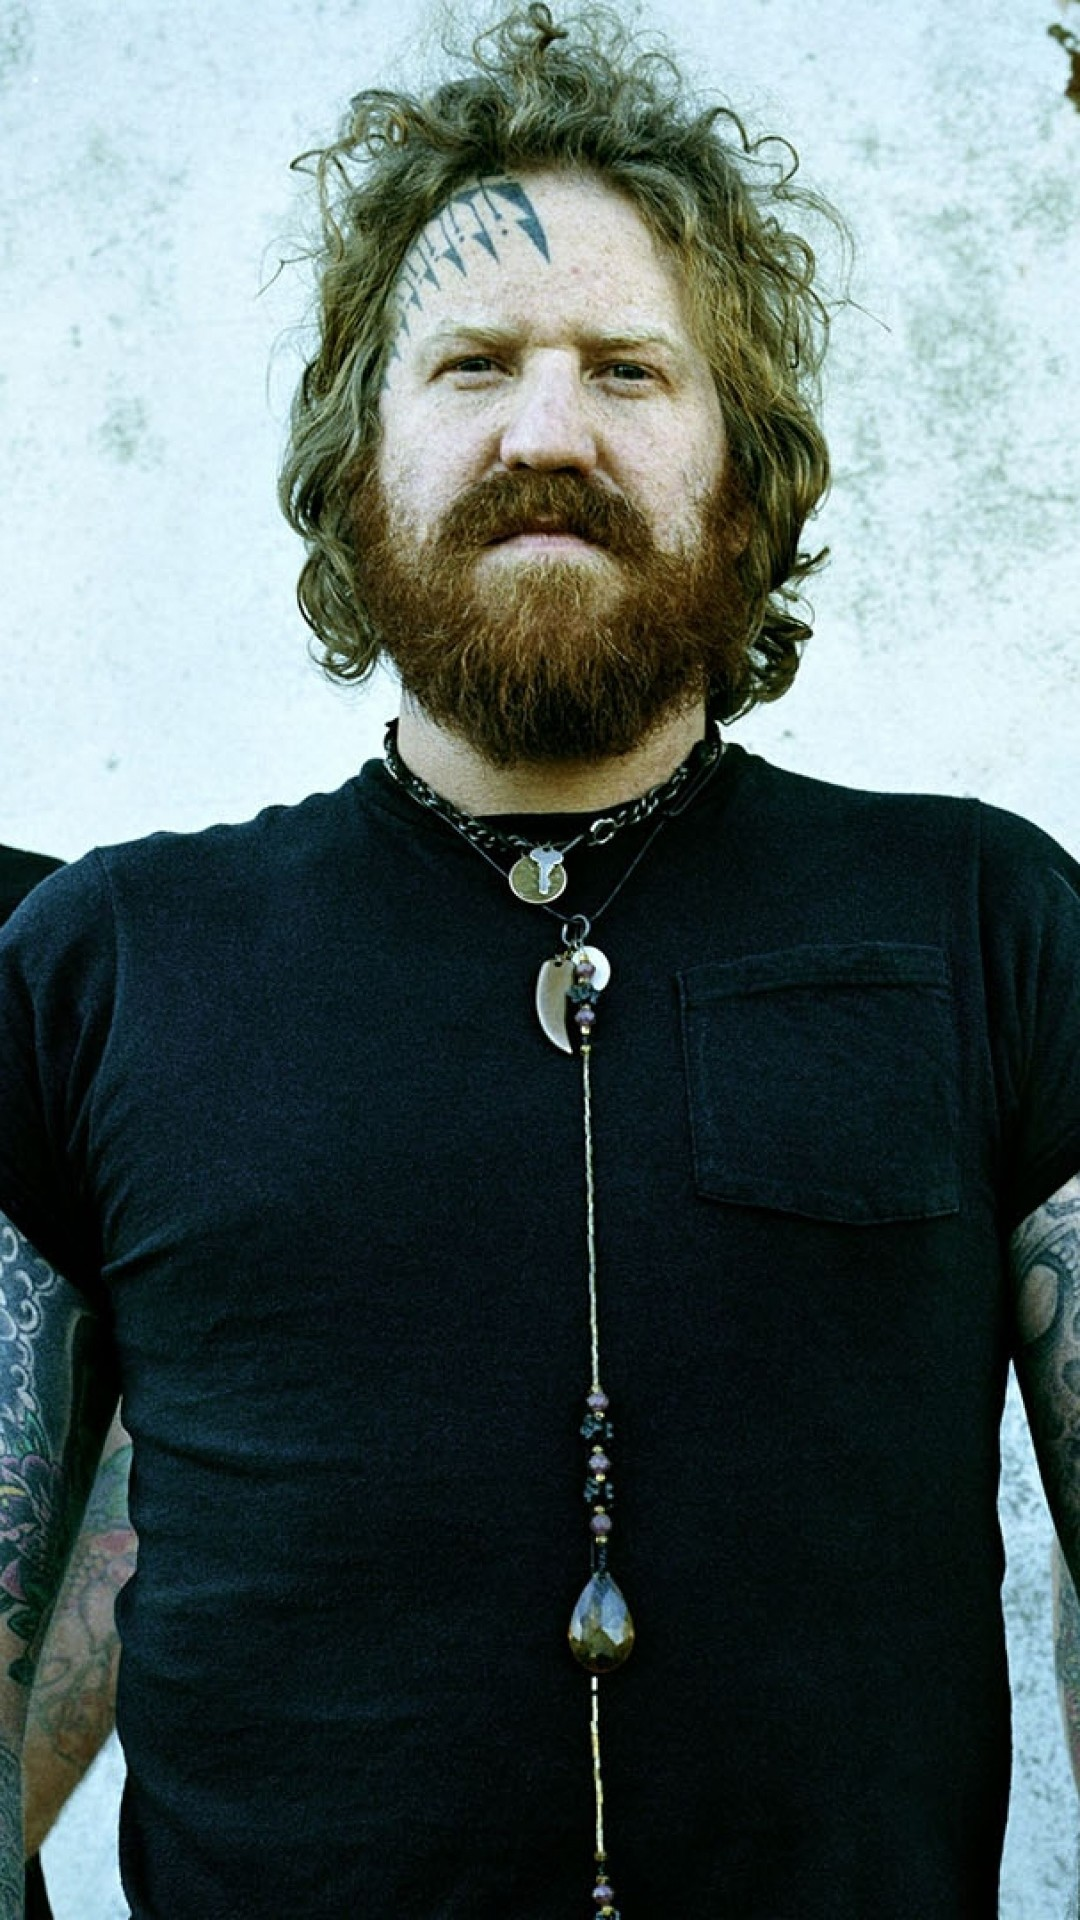 1080x1920  Wallpaper mastodon, earrings, t-shirts, chain, beard